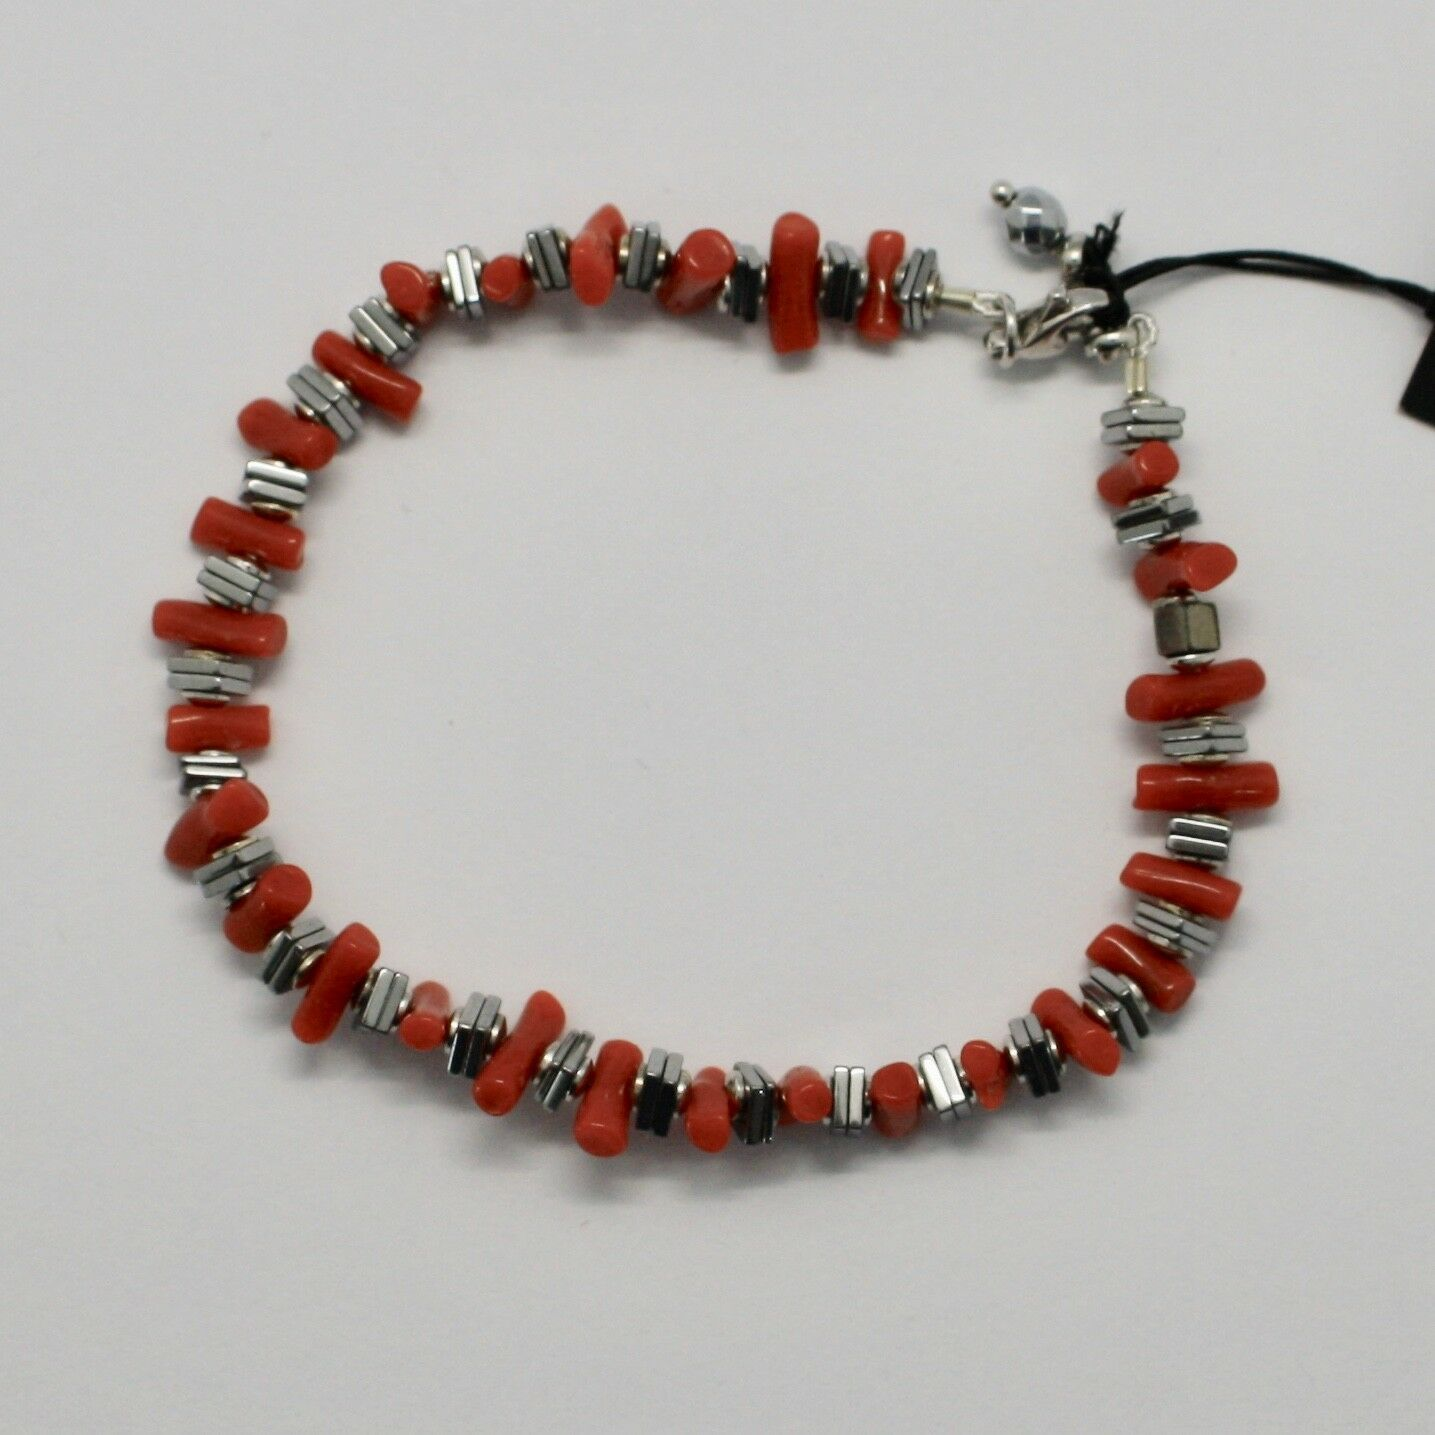 SILVER 925 BRACELET WITH CORAL HEMATITE BPI90-2 MADE IN ITALY BY MASCHIA